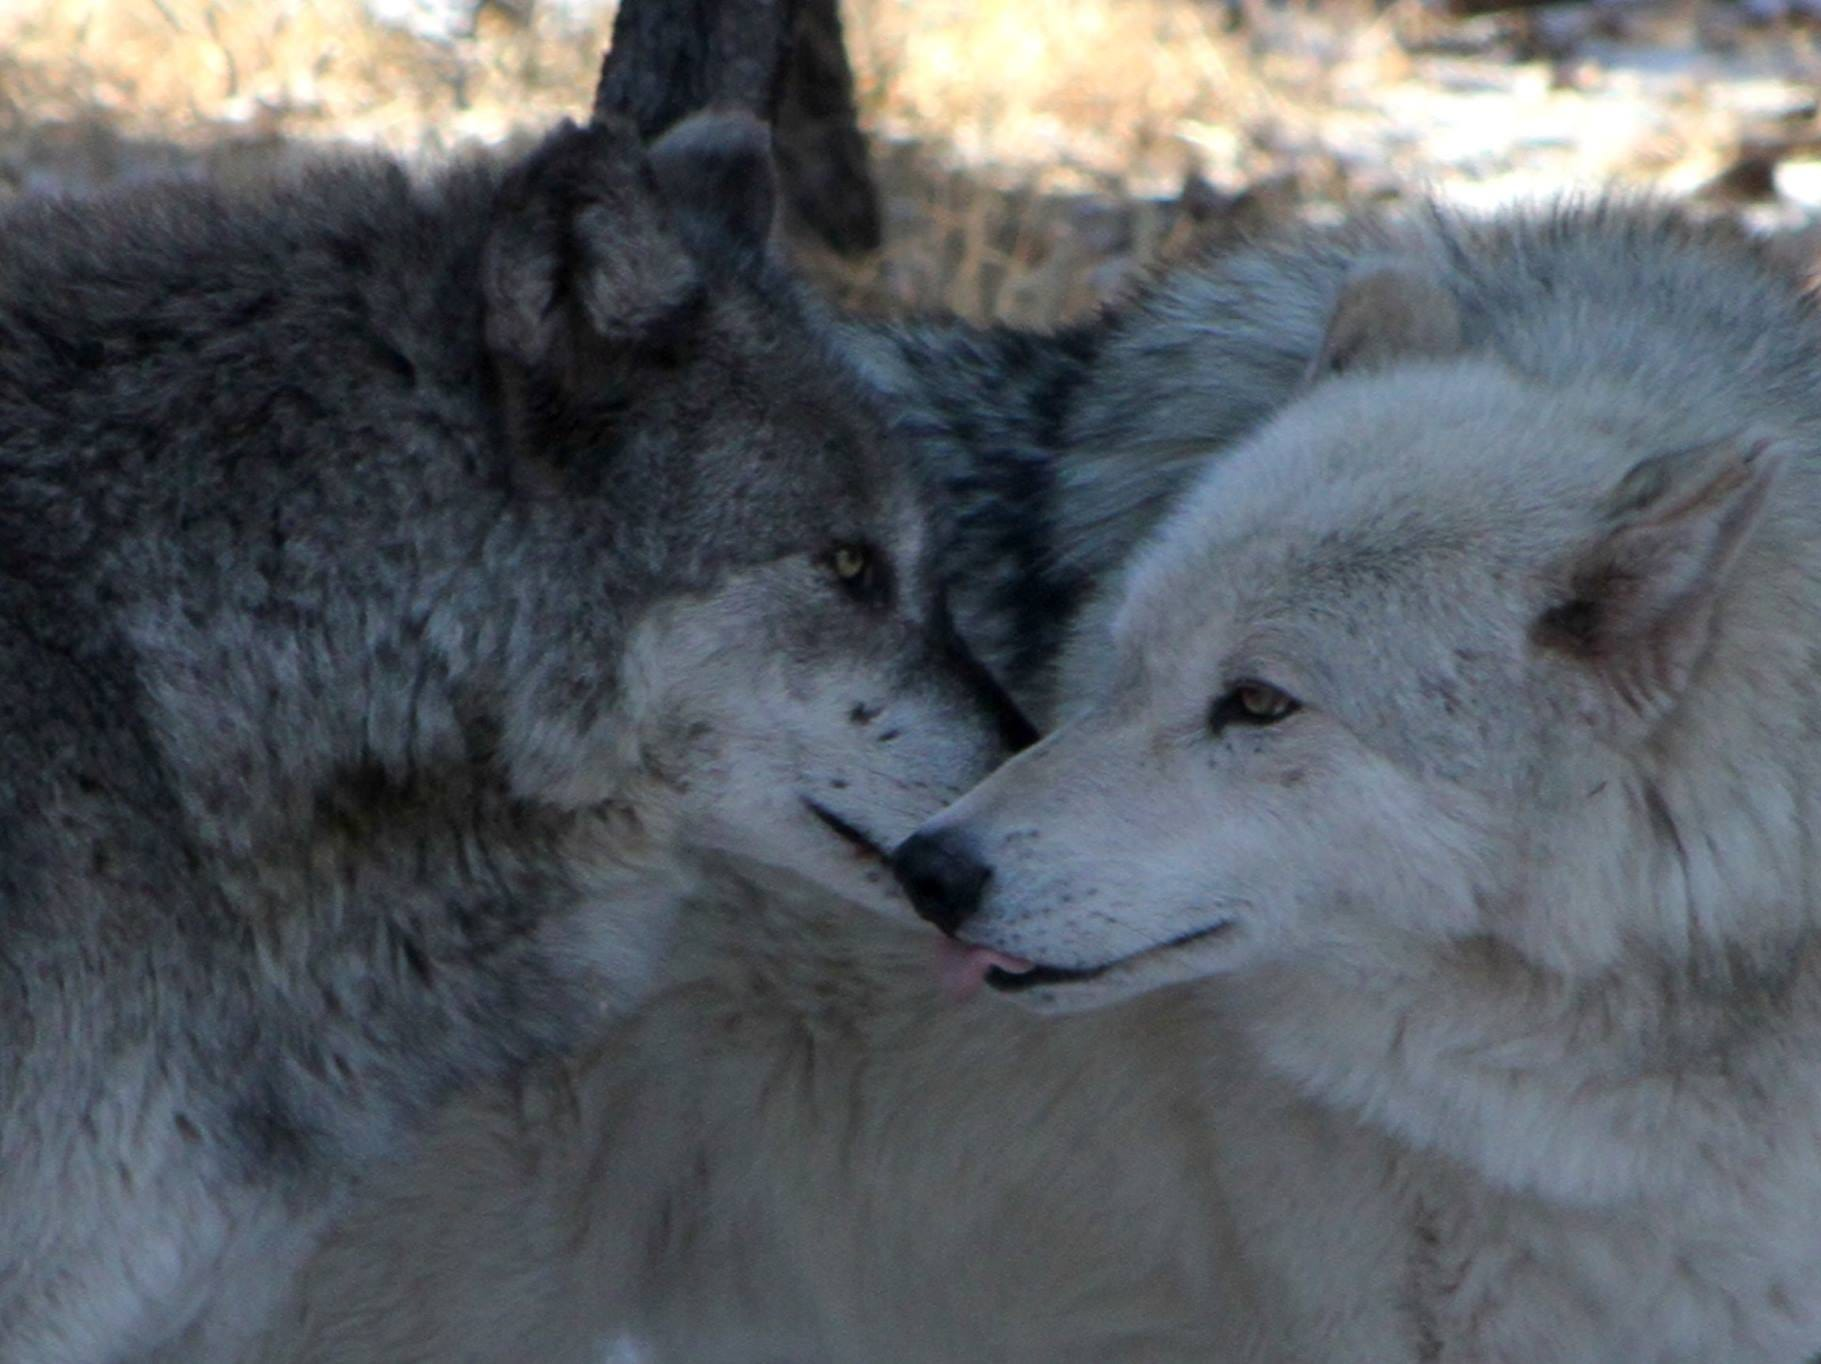 Hugs and kisses from Alaskan Tundra wolves Shadow and Geronimo.